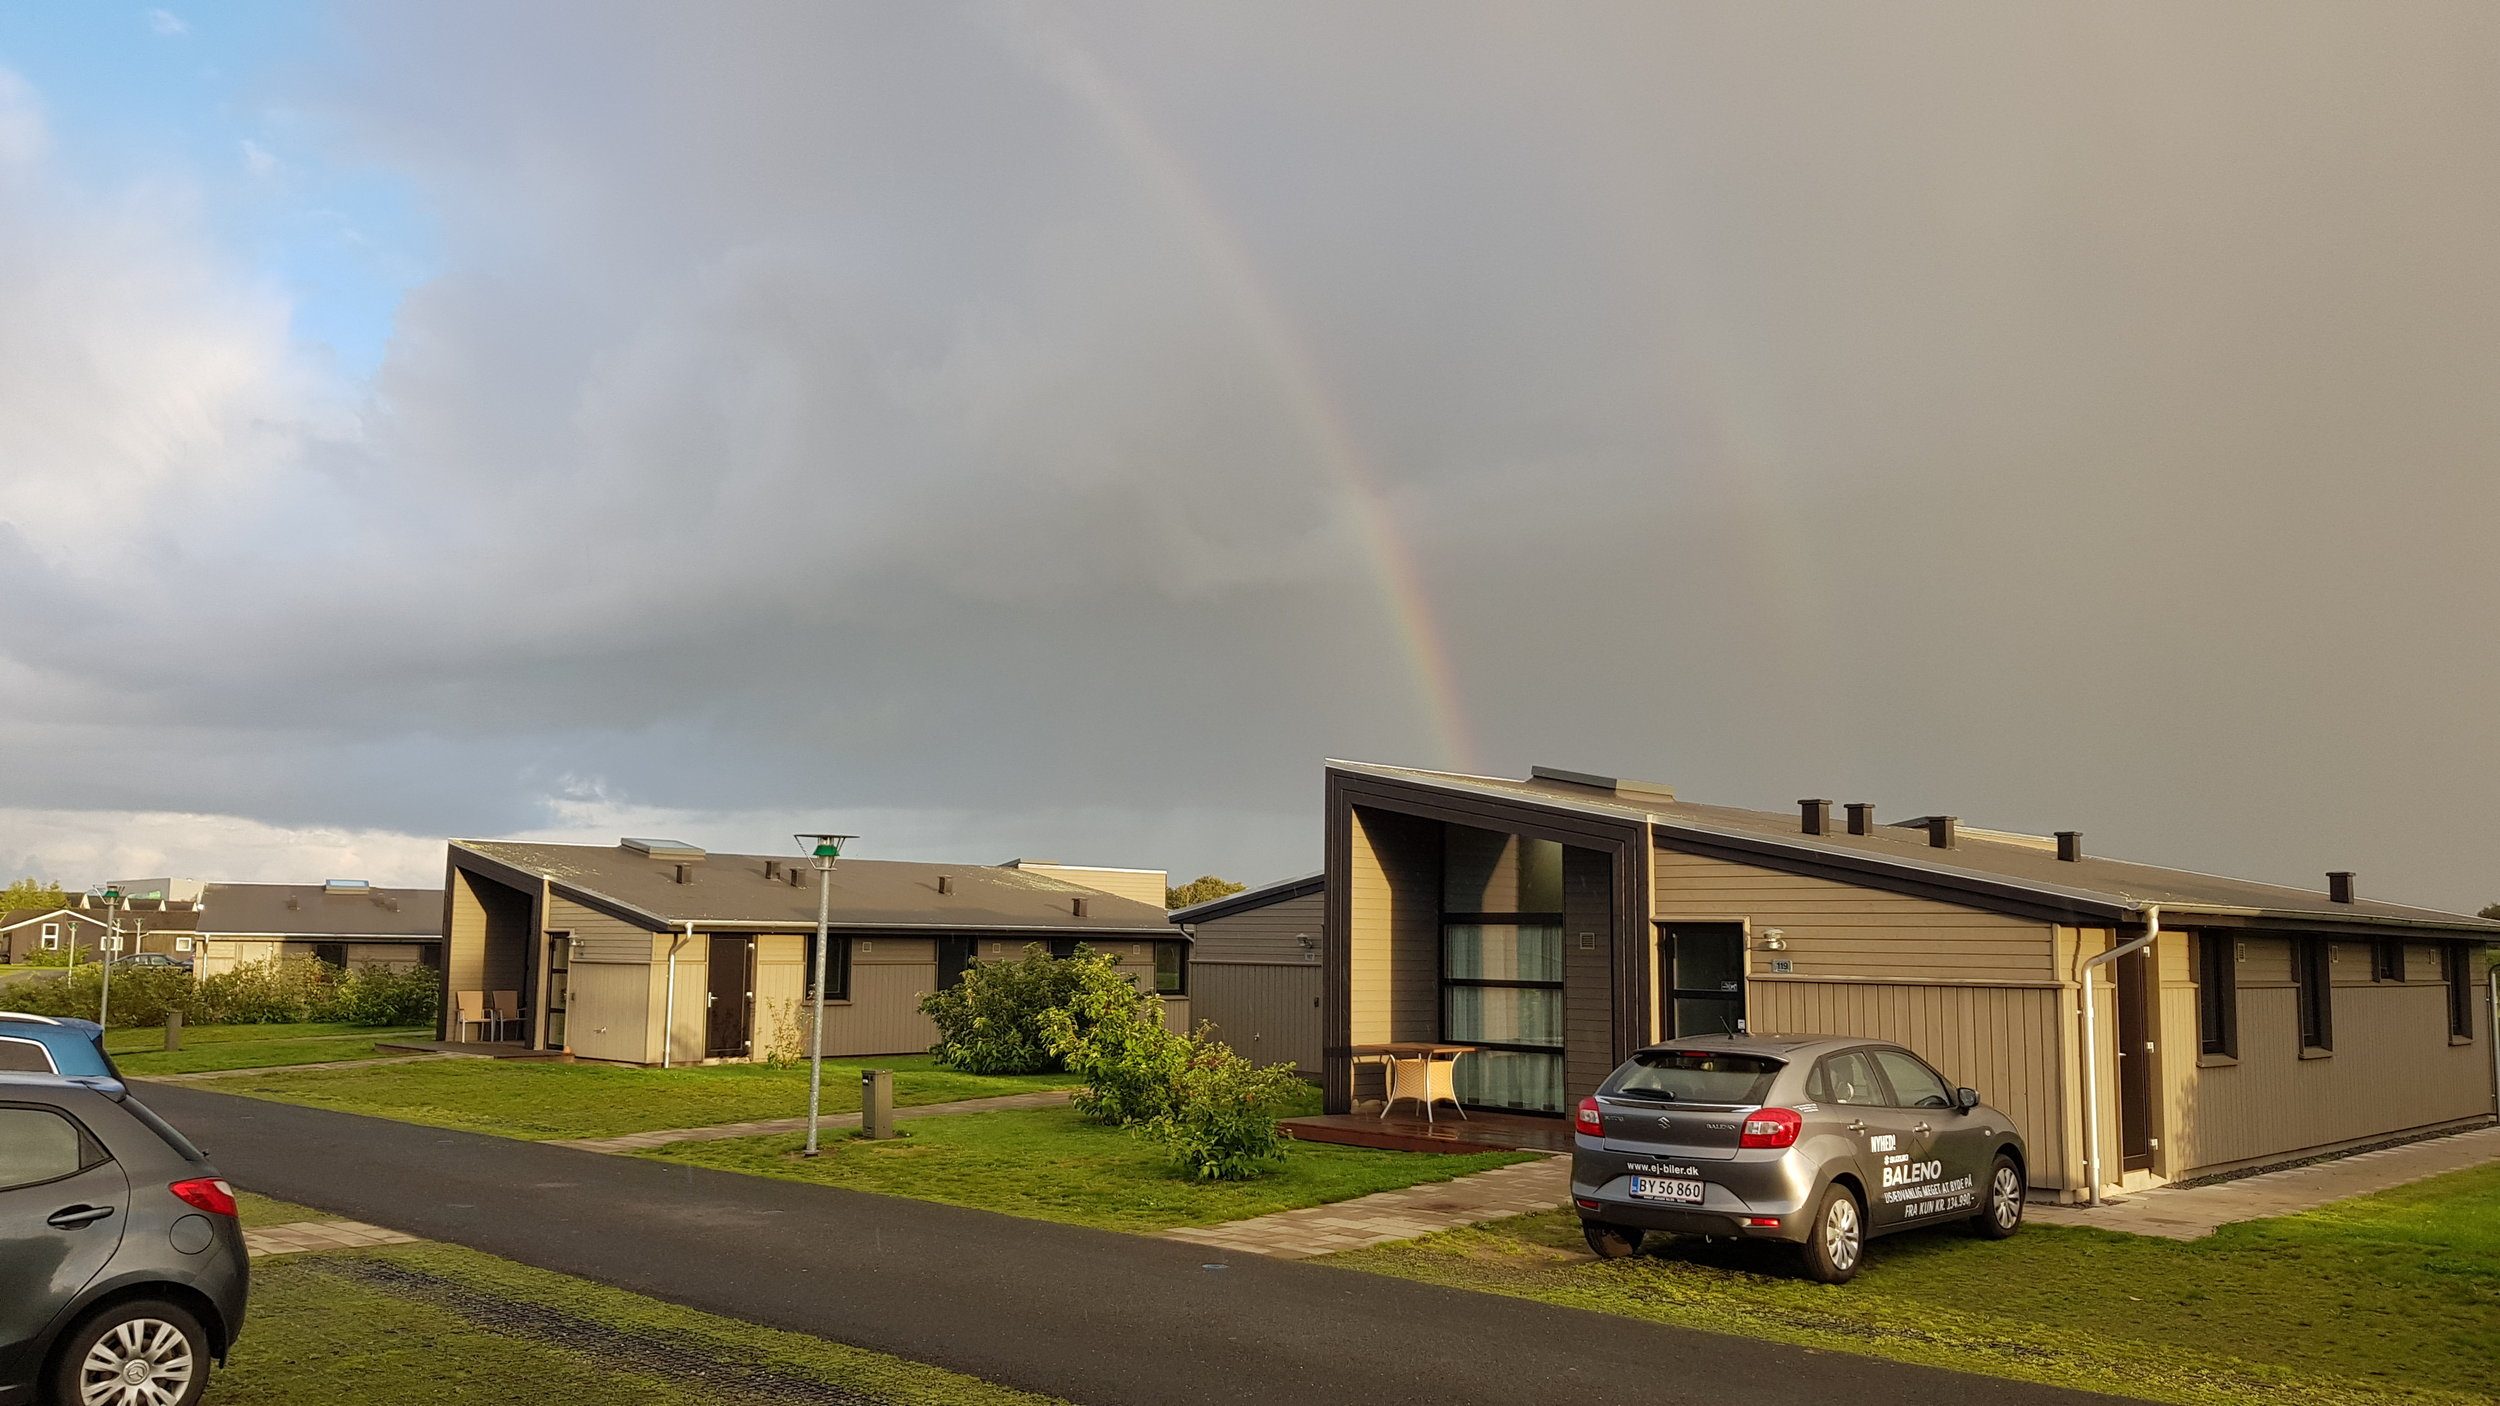 Denmark is a land of rainbows.  Our holiday cottage was like this building